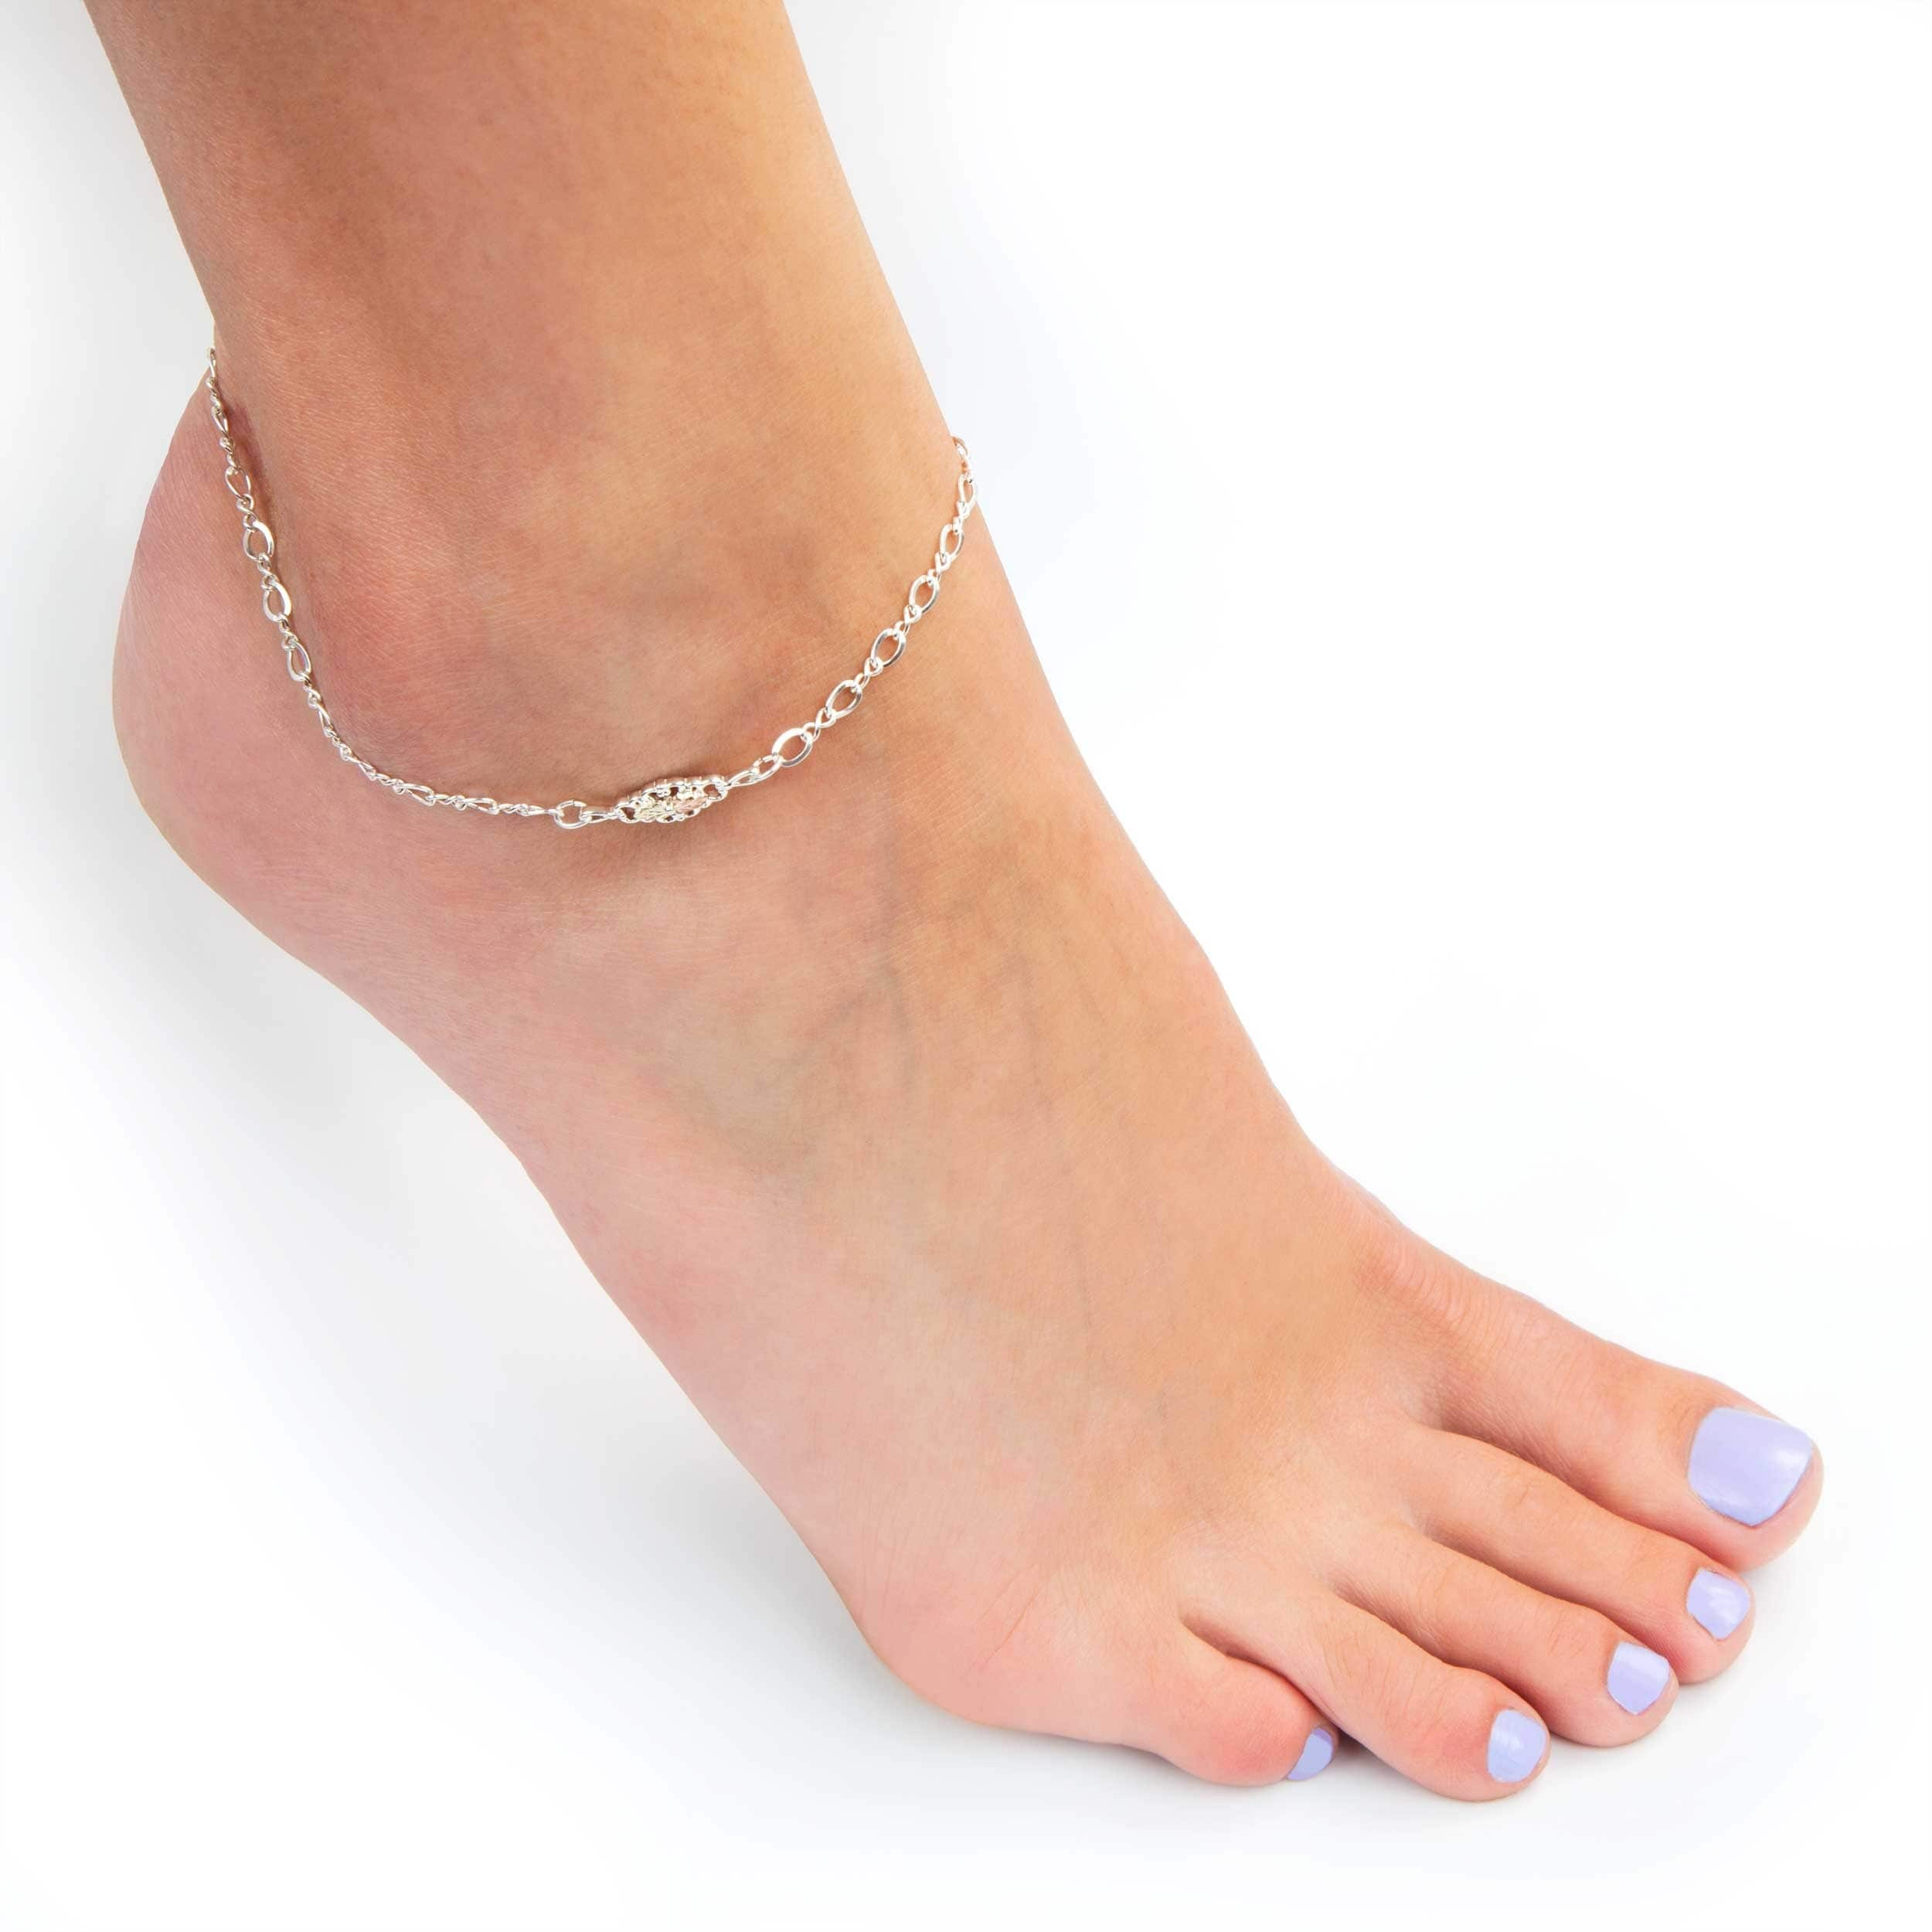 bh new penny levi r anklet london tennis adjustable products bracelet